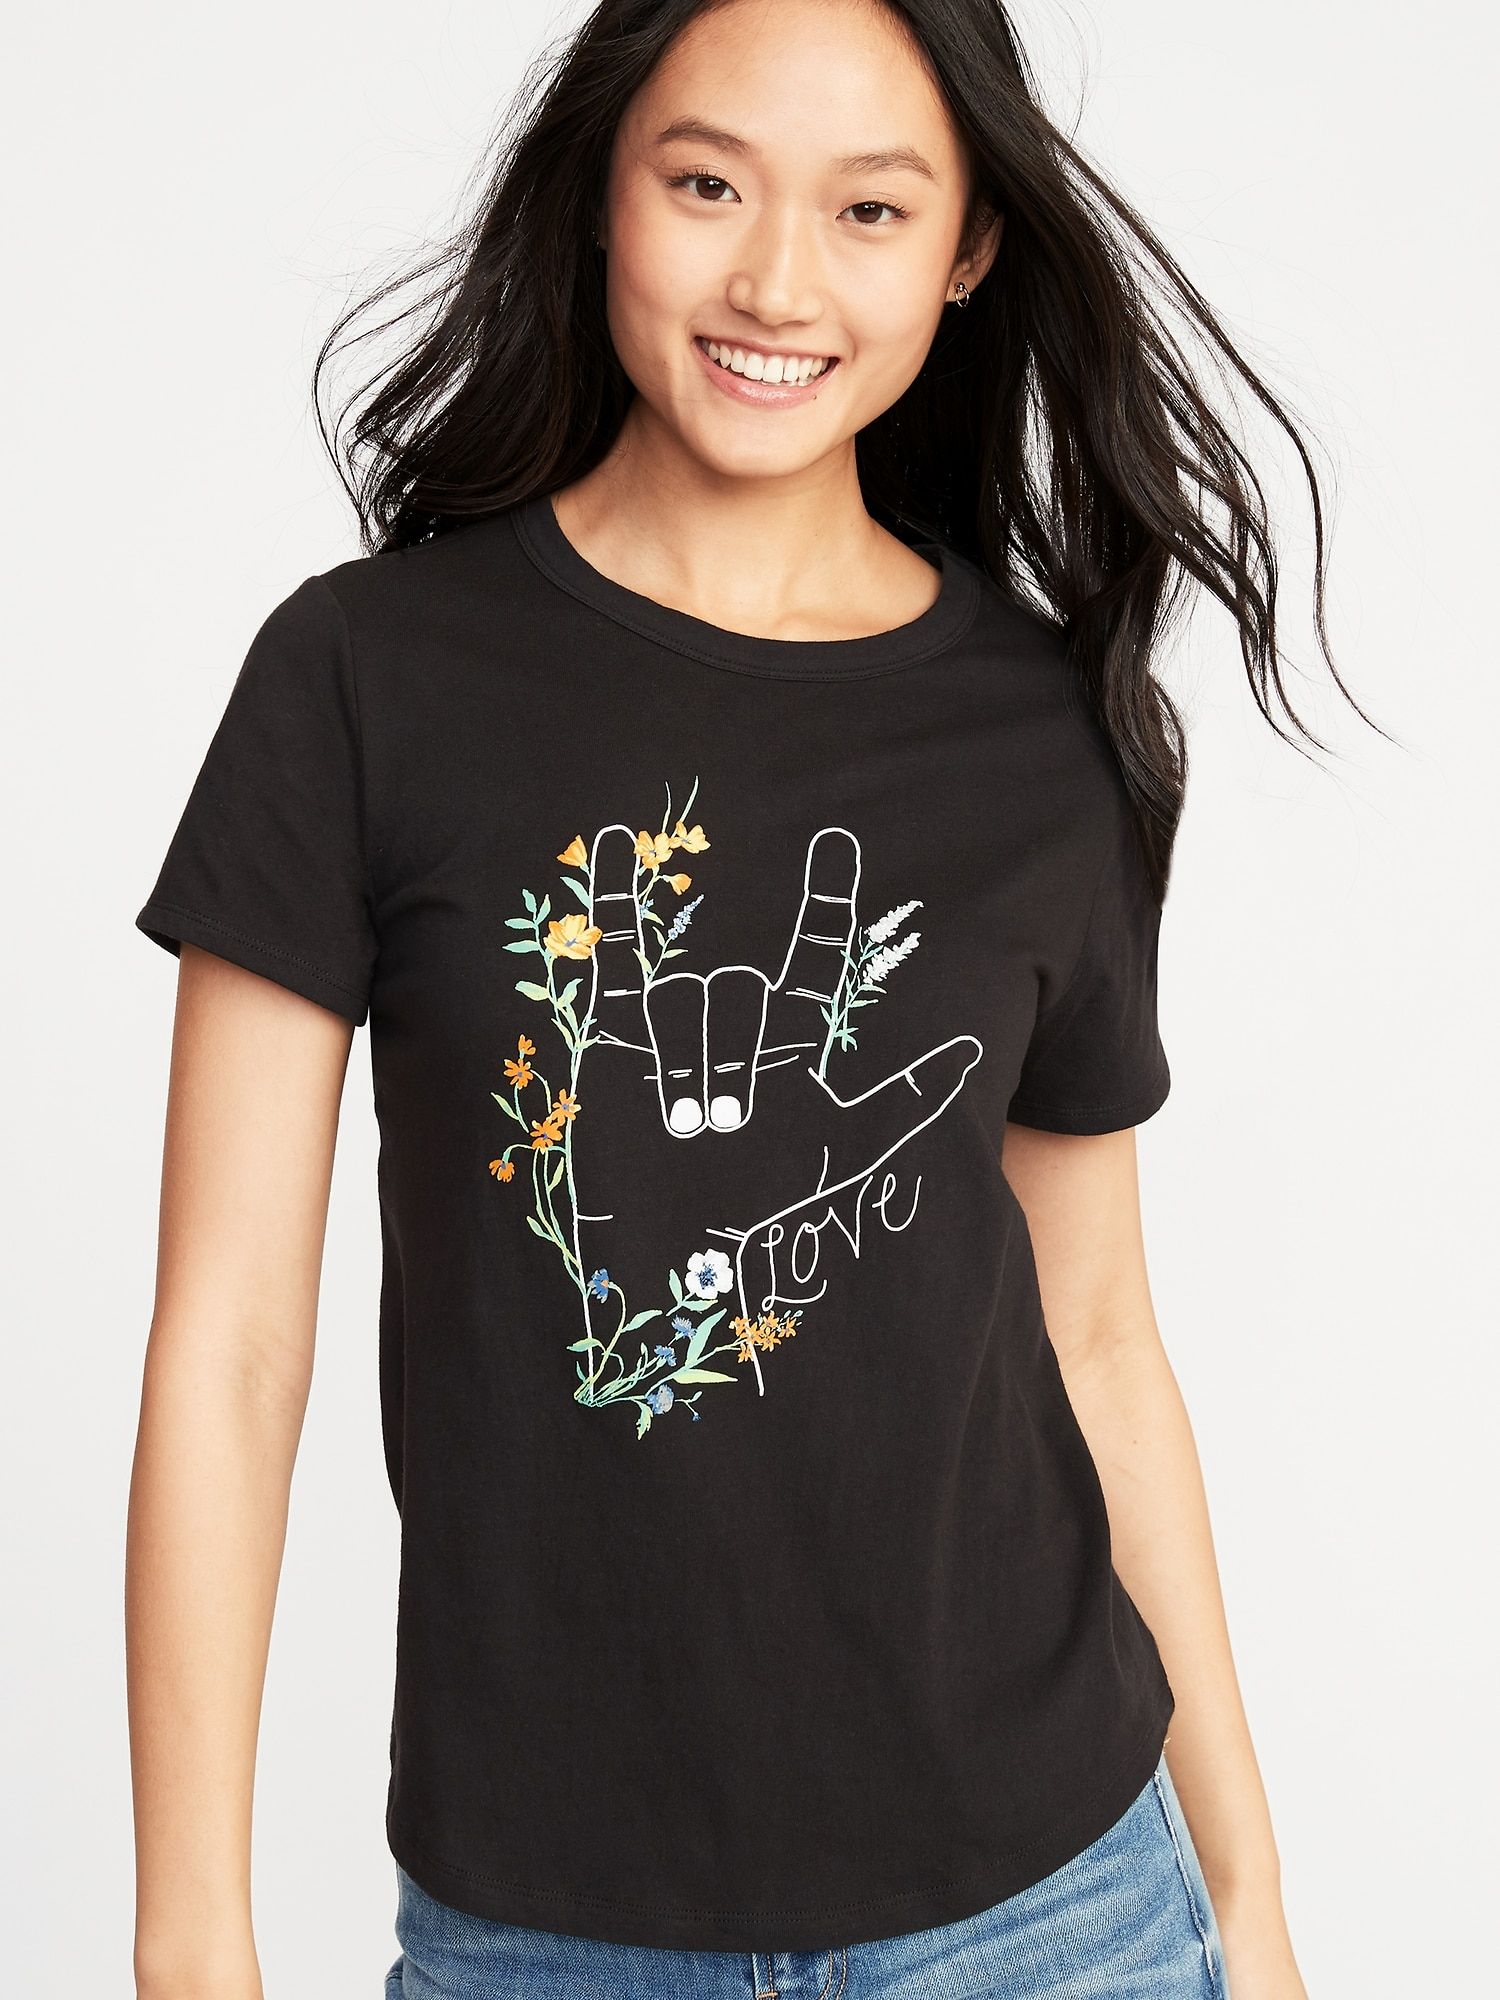 290798da1fa EveryWear Graphic Tee for Women in 2019